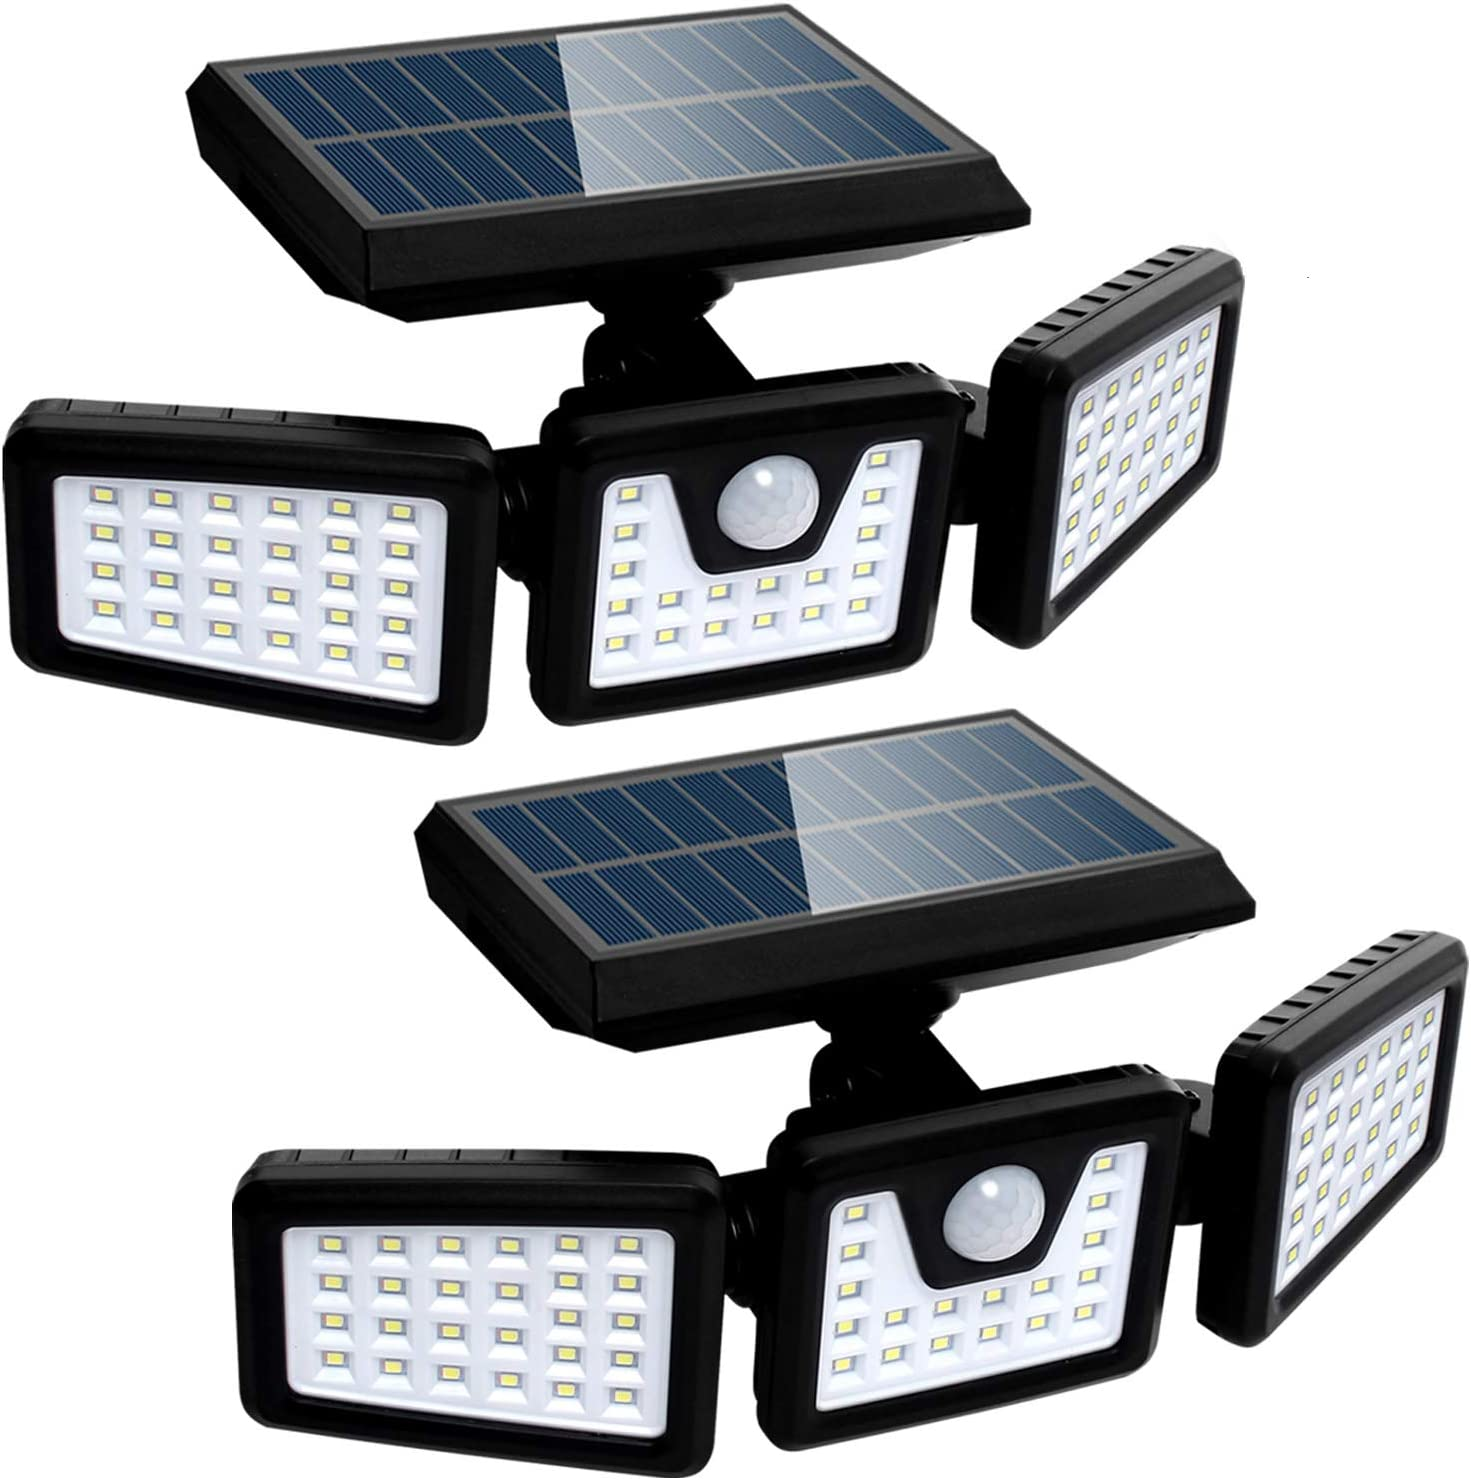 Solar Lights Outdoor With Motion Sensor 3 Heads Security Lights Solar Powered 70 Led Flood Light Motion Detected Spotlight For Garage Yard Entryways Patio Ip65 Waterproof 2 Pack